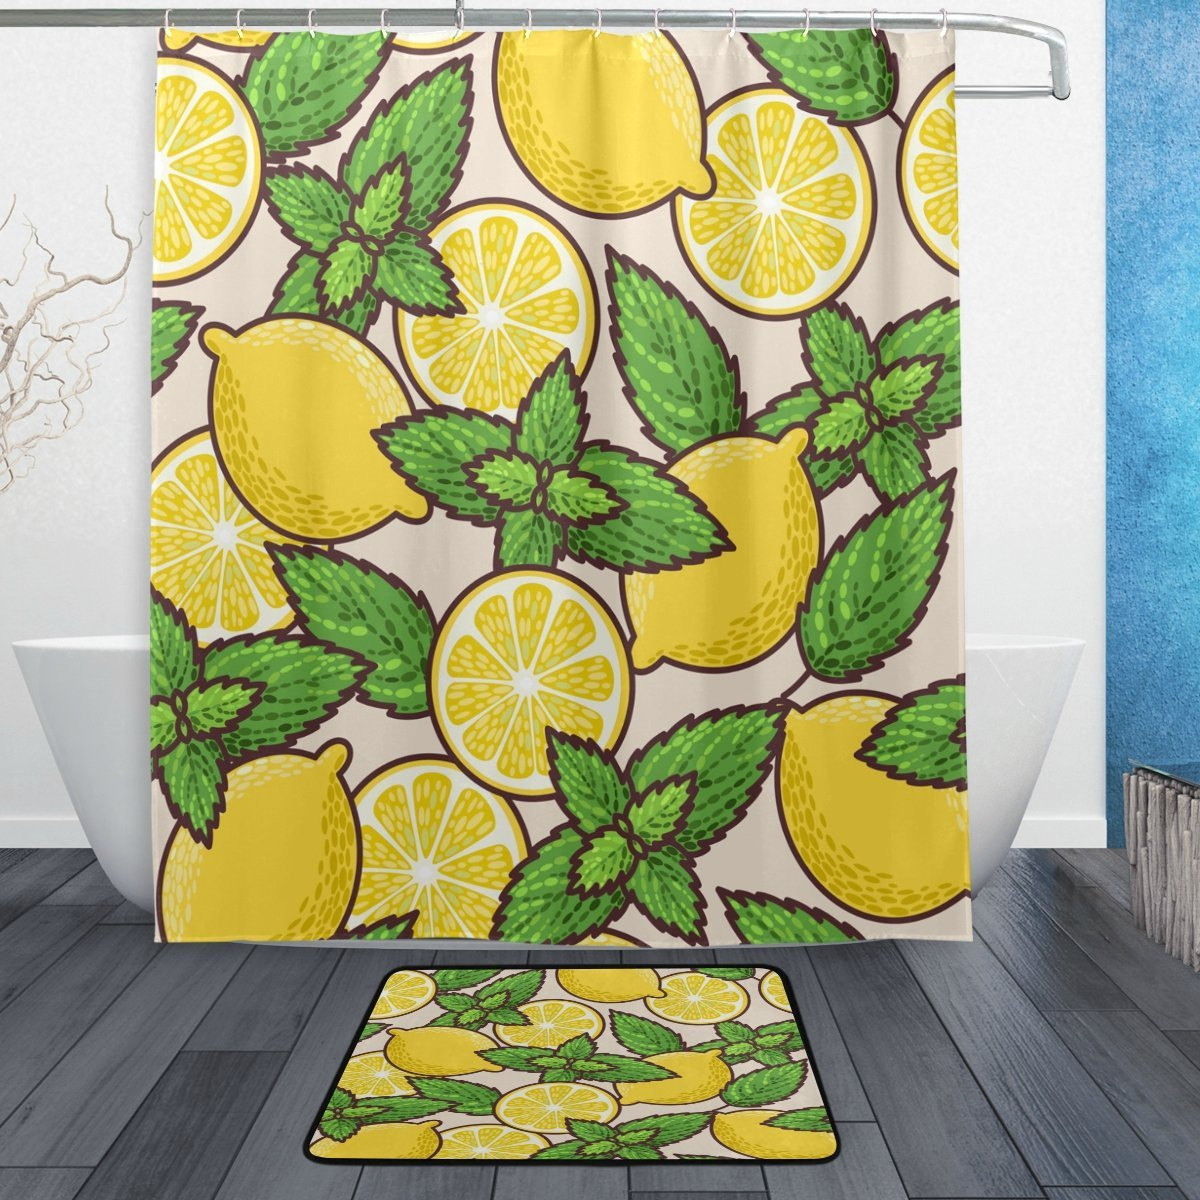 Fresh Lemon and Peppermint Waterproof Polyester Fabric Shower Curtain with Hooks Doormat Bath Floor Mat Bathroom Home Decor